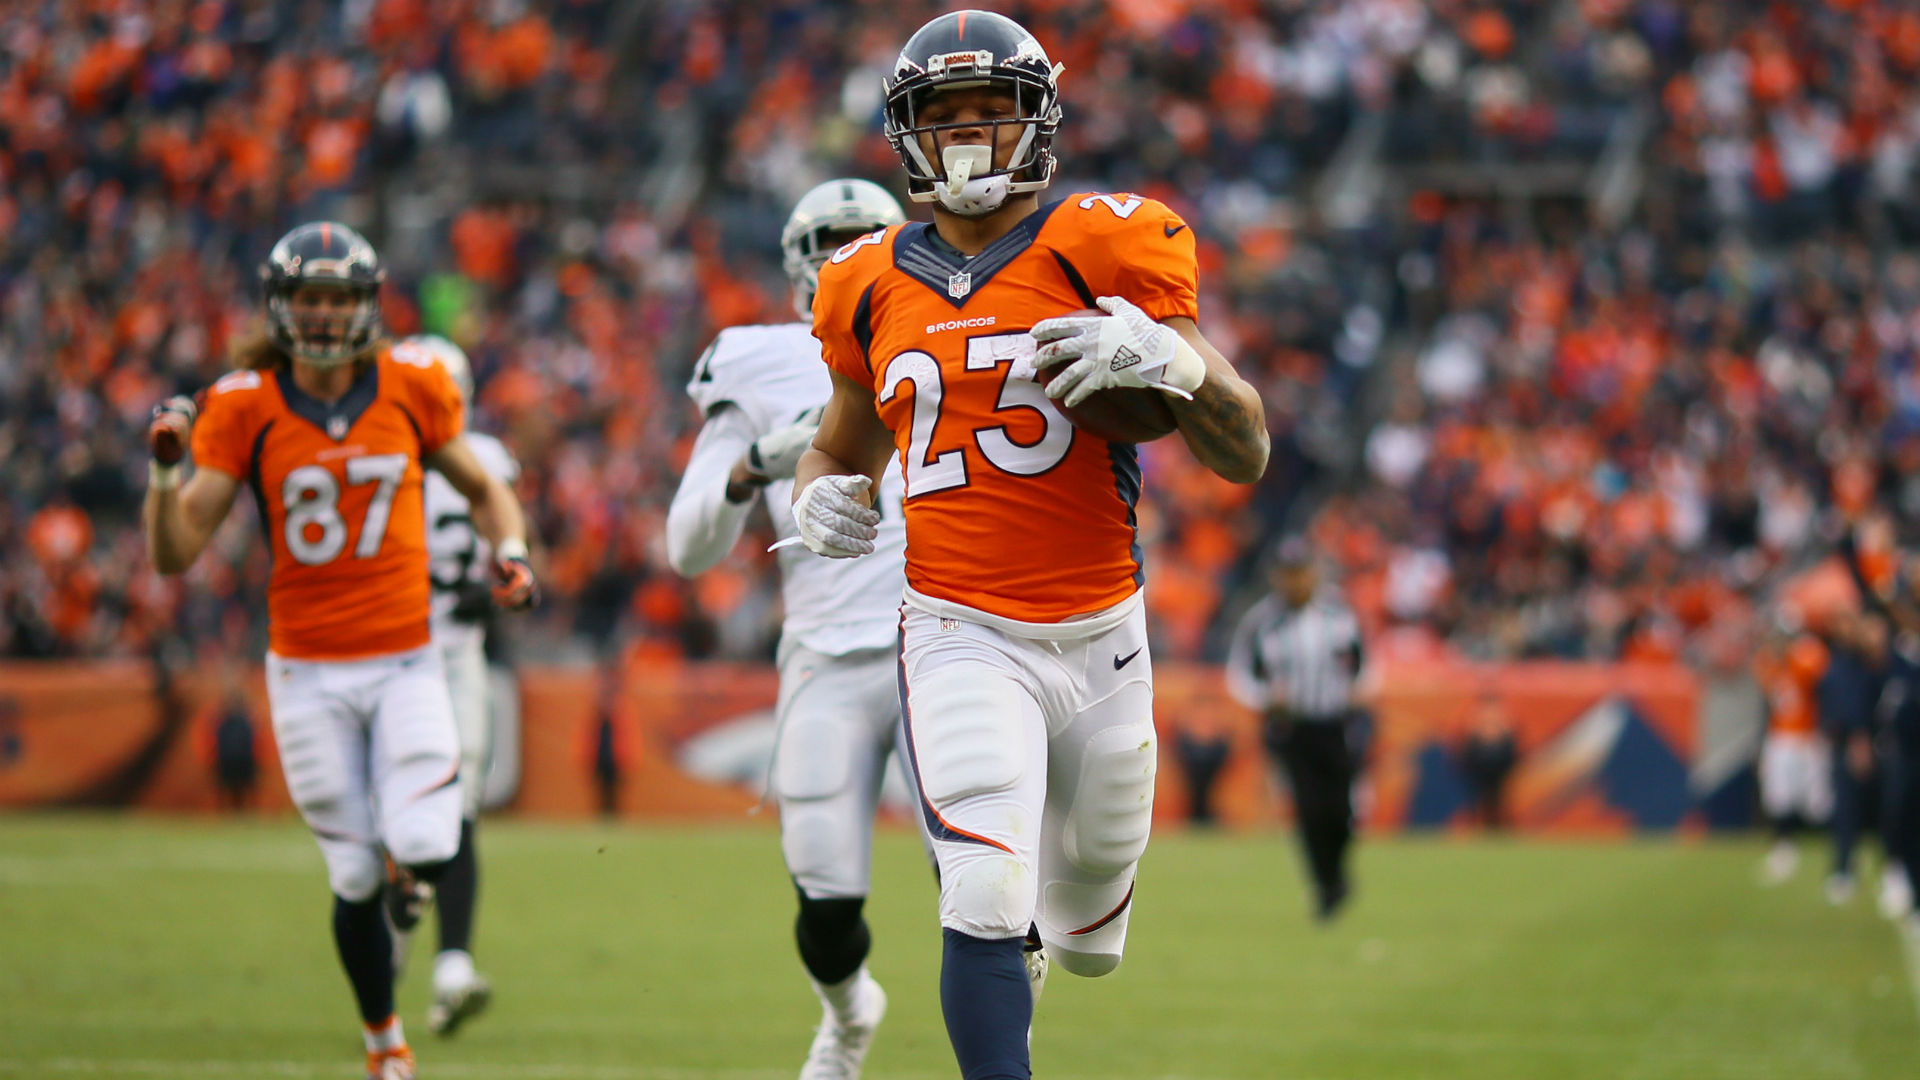 Broncos' RB Devontae Booker expected to miss 6-8 weeks